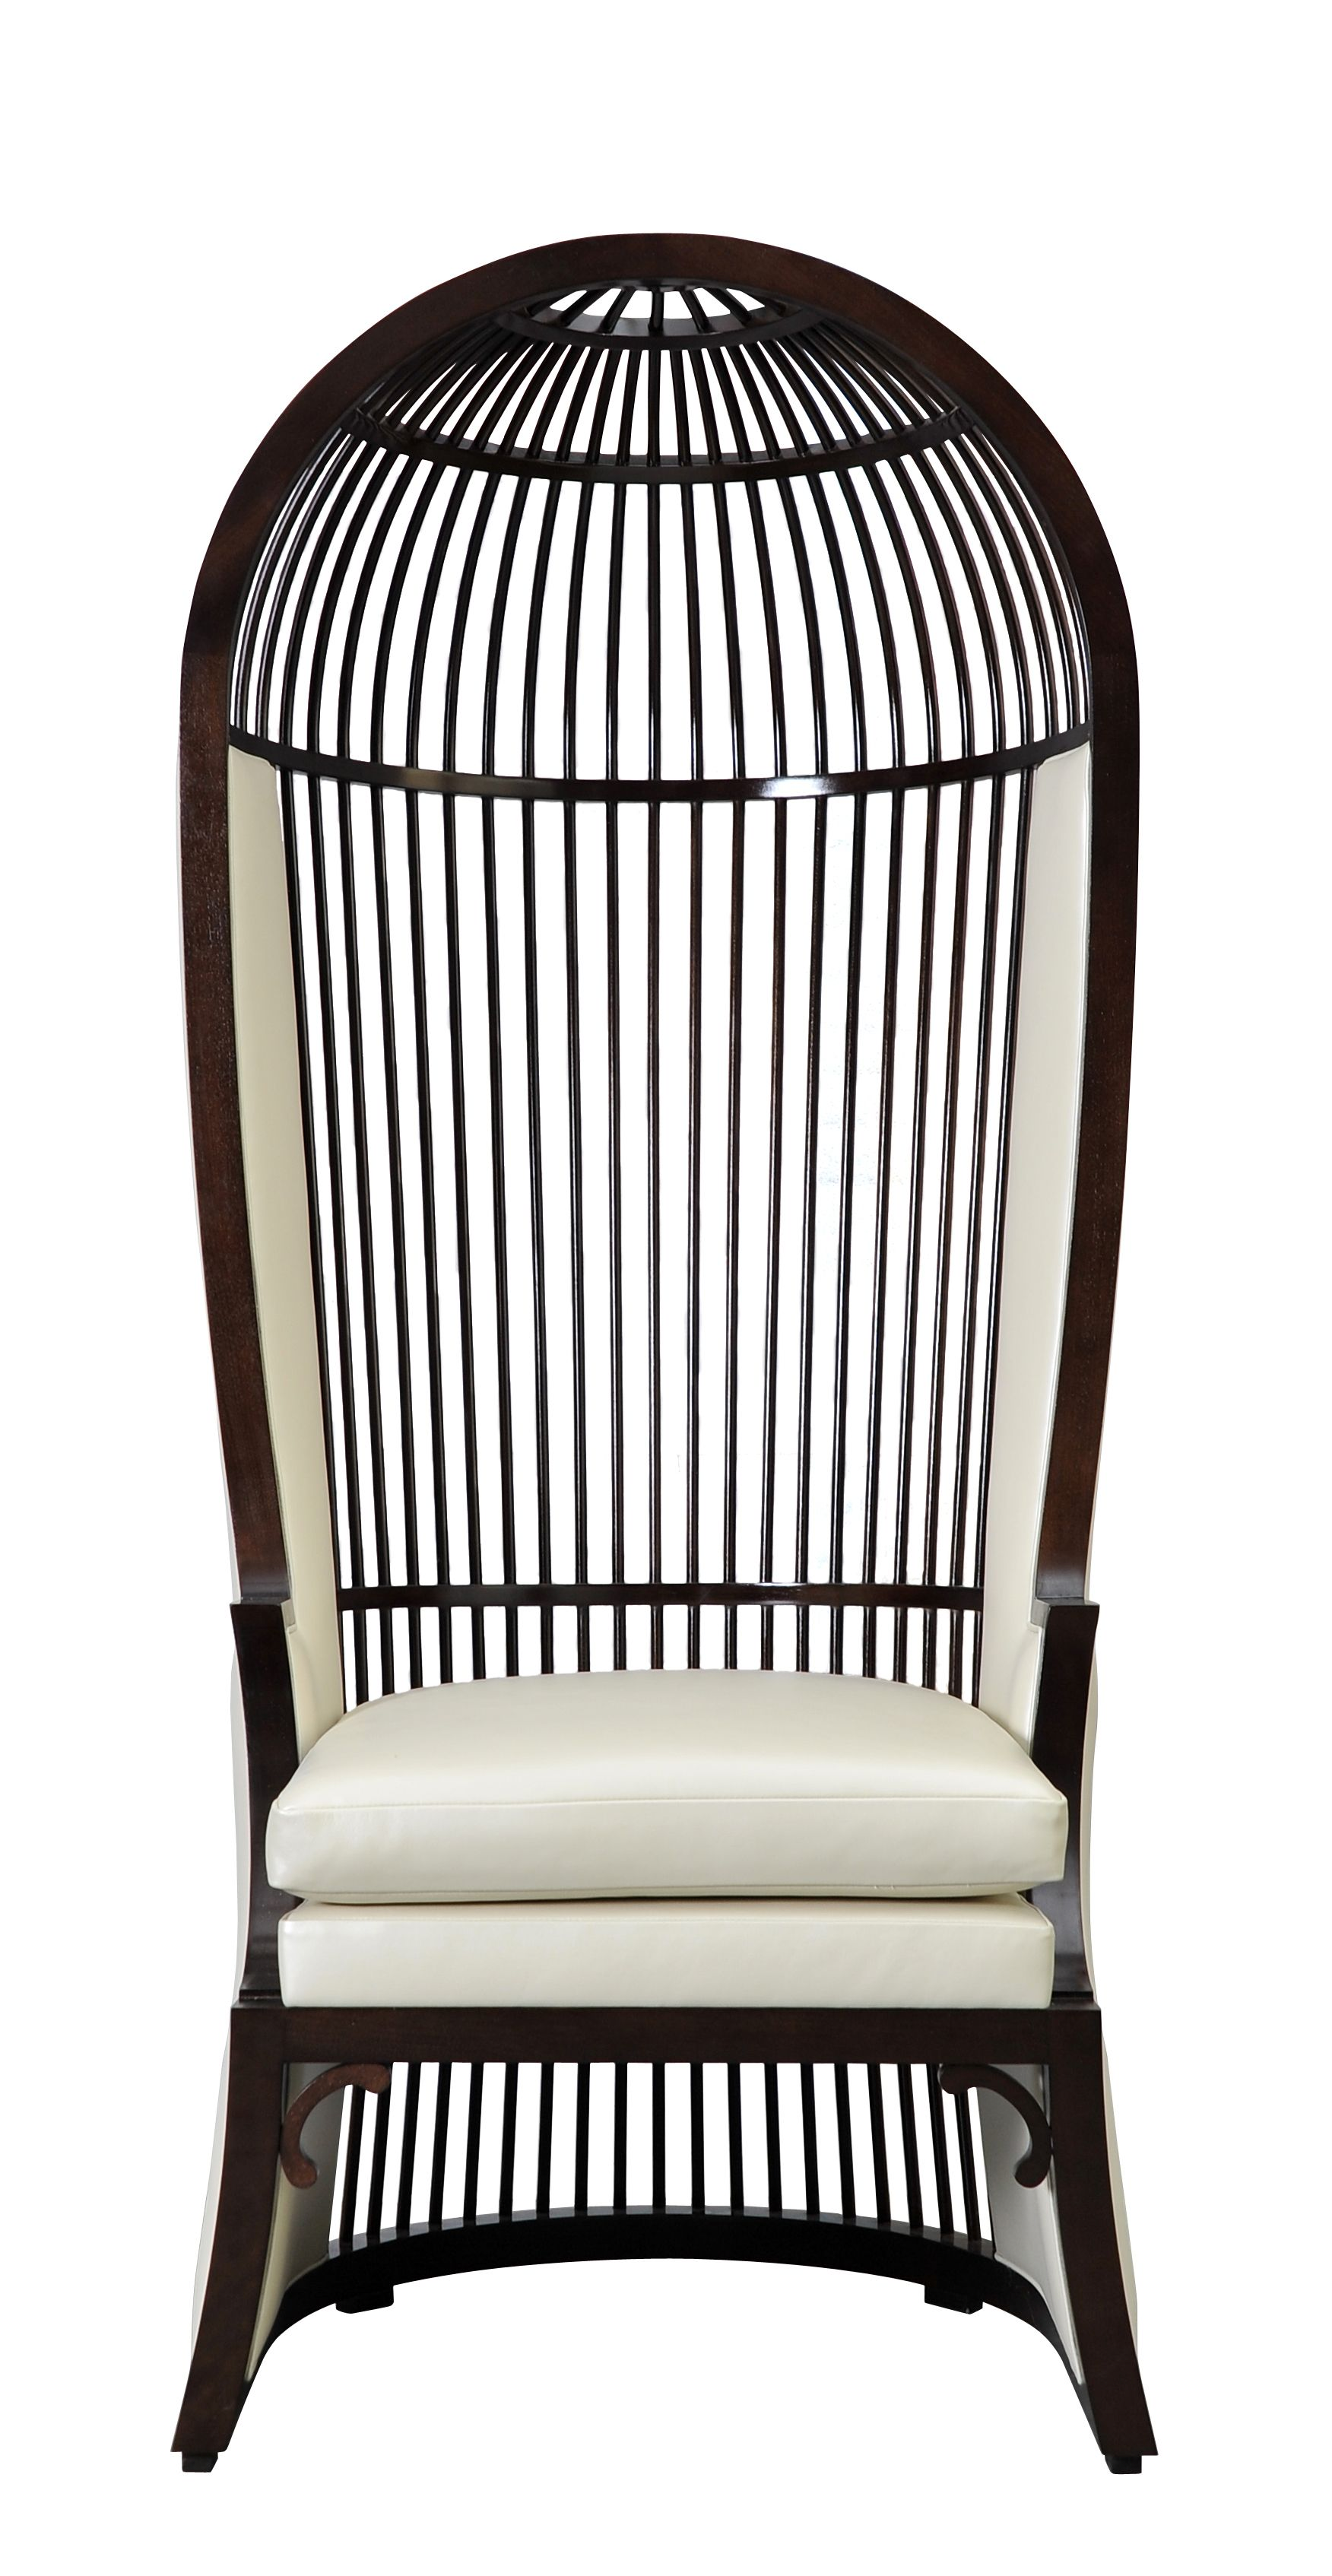 Wayfair High Back Chairs Bird Cage Chair Chinese Restaurant Another Way To